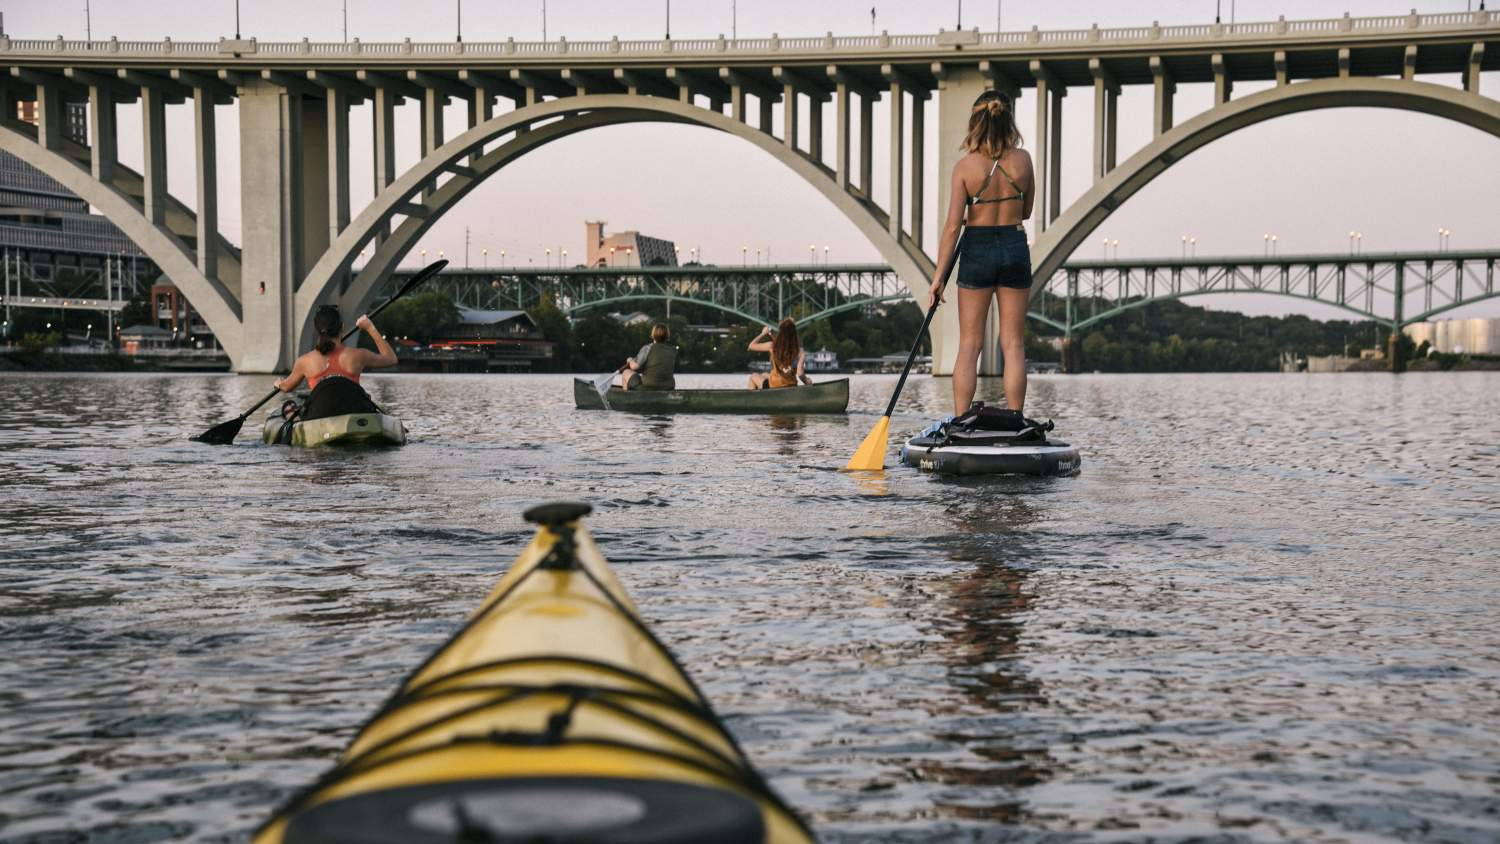 People enjoying the Tennessee River